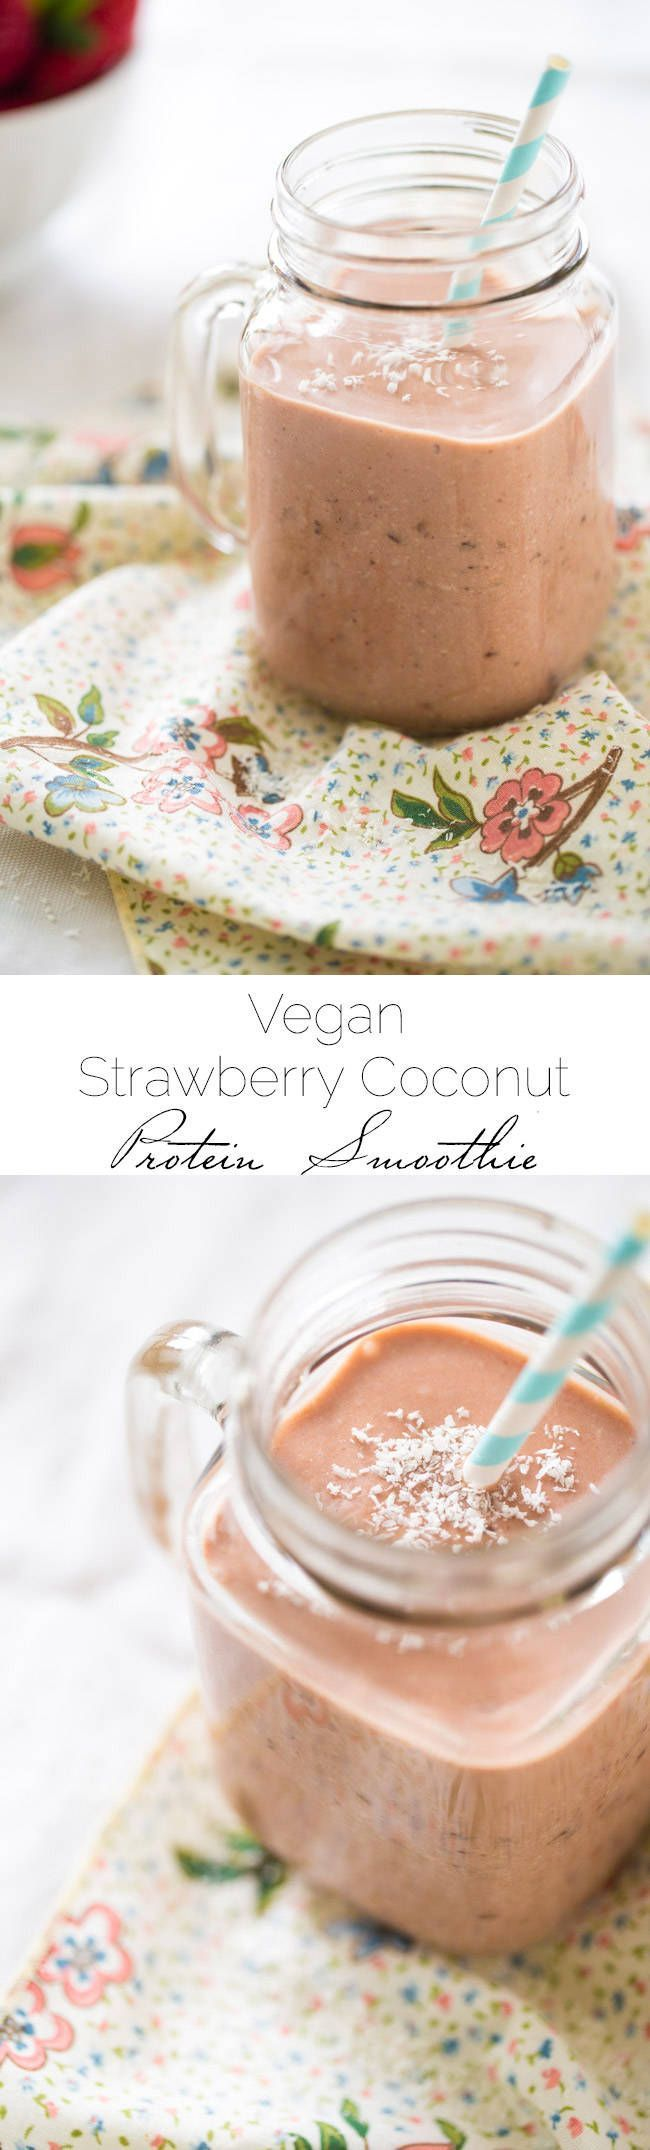 Vegan Strawberry Coconut Milk Smoothie - Made in 5 mins, only 5 ingredients and SO healthy and protein packed! | Foodfaithfitness.com | @Food Faith Fitness